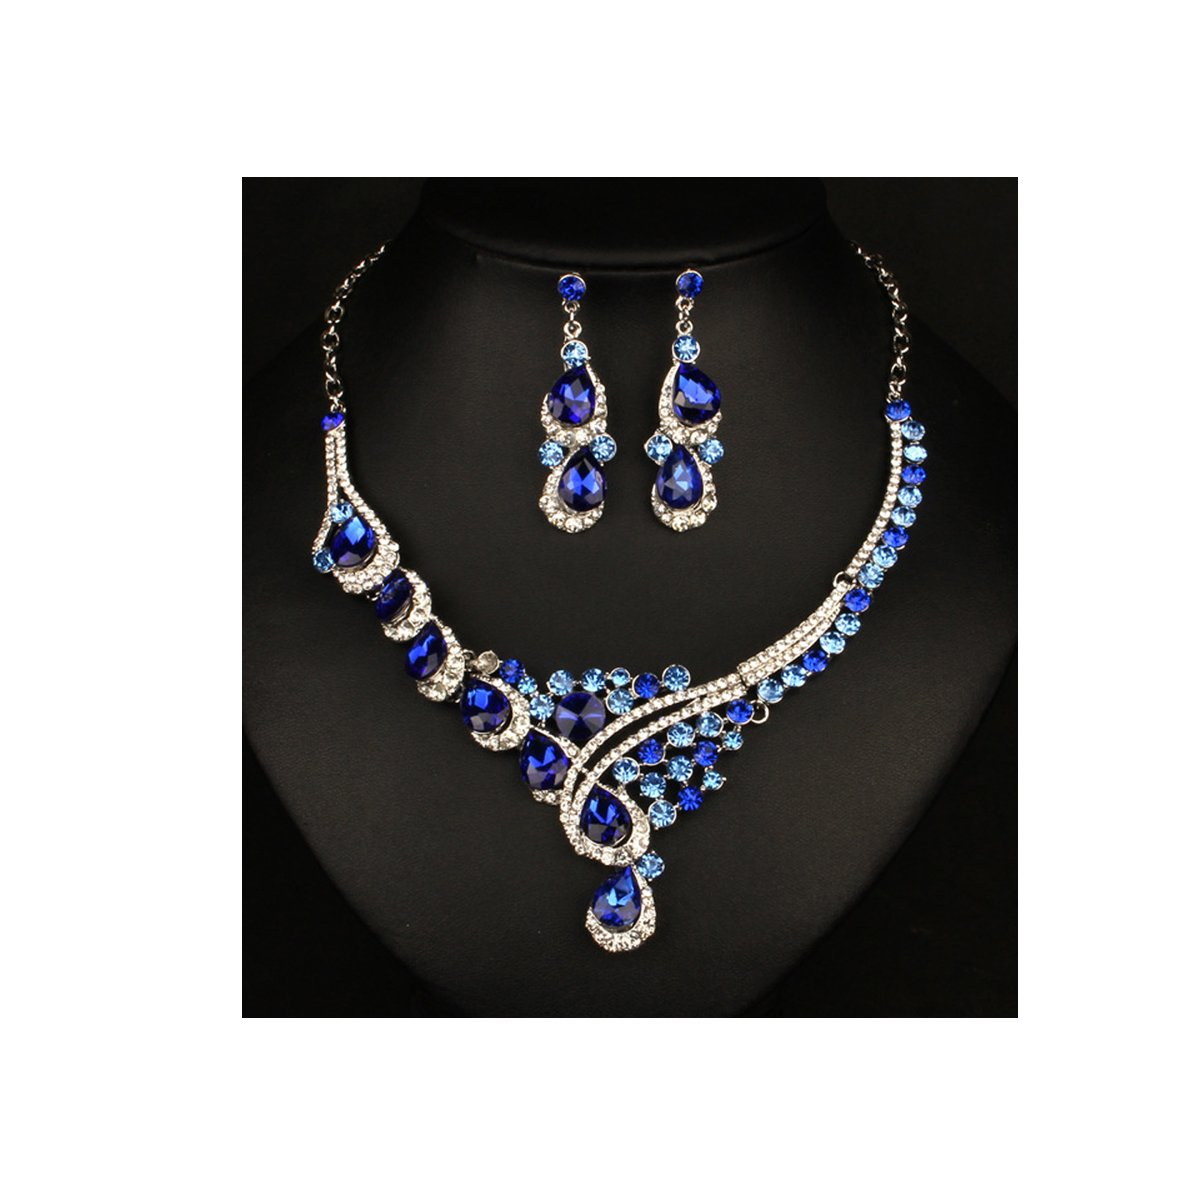 ENUUNO Costume jewelry Multi-color Crystal Choker Pendant Statement Chain Charm Necklace and Earrings Sets (Blue, alloy)